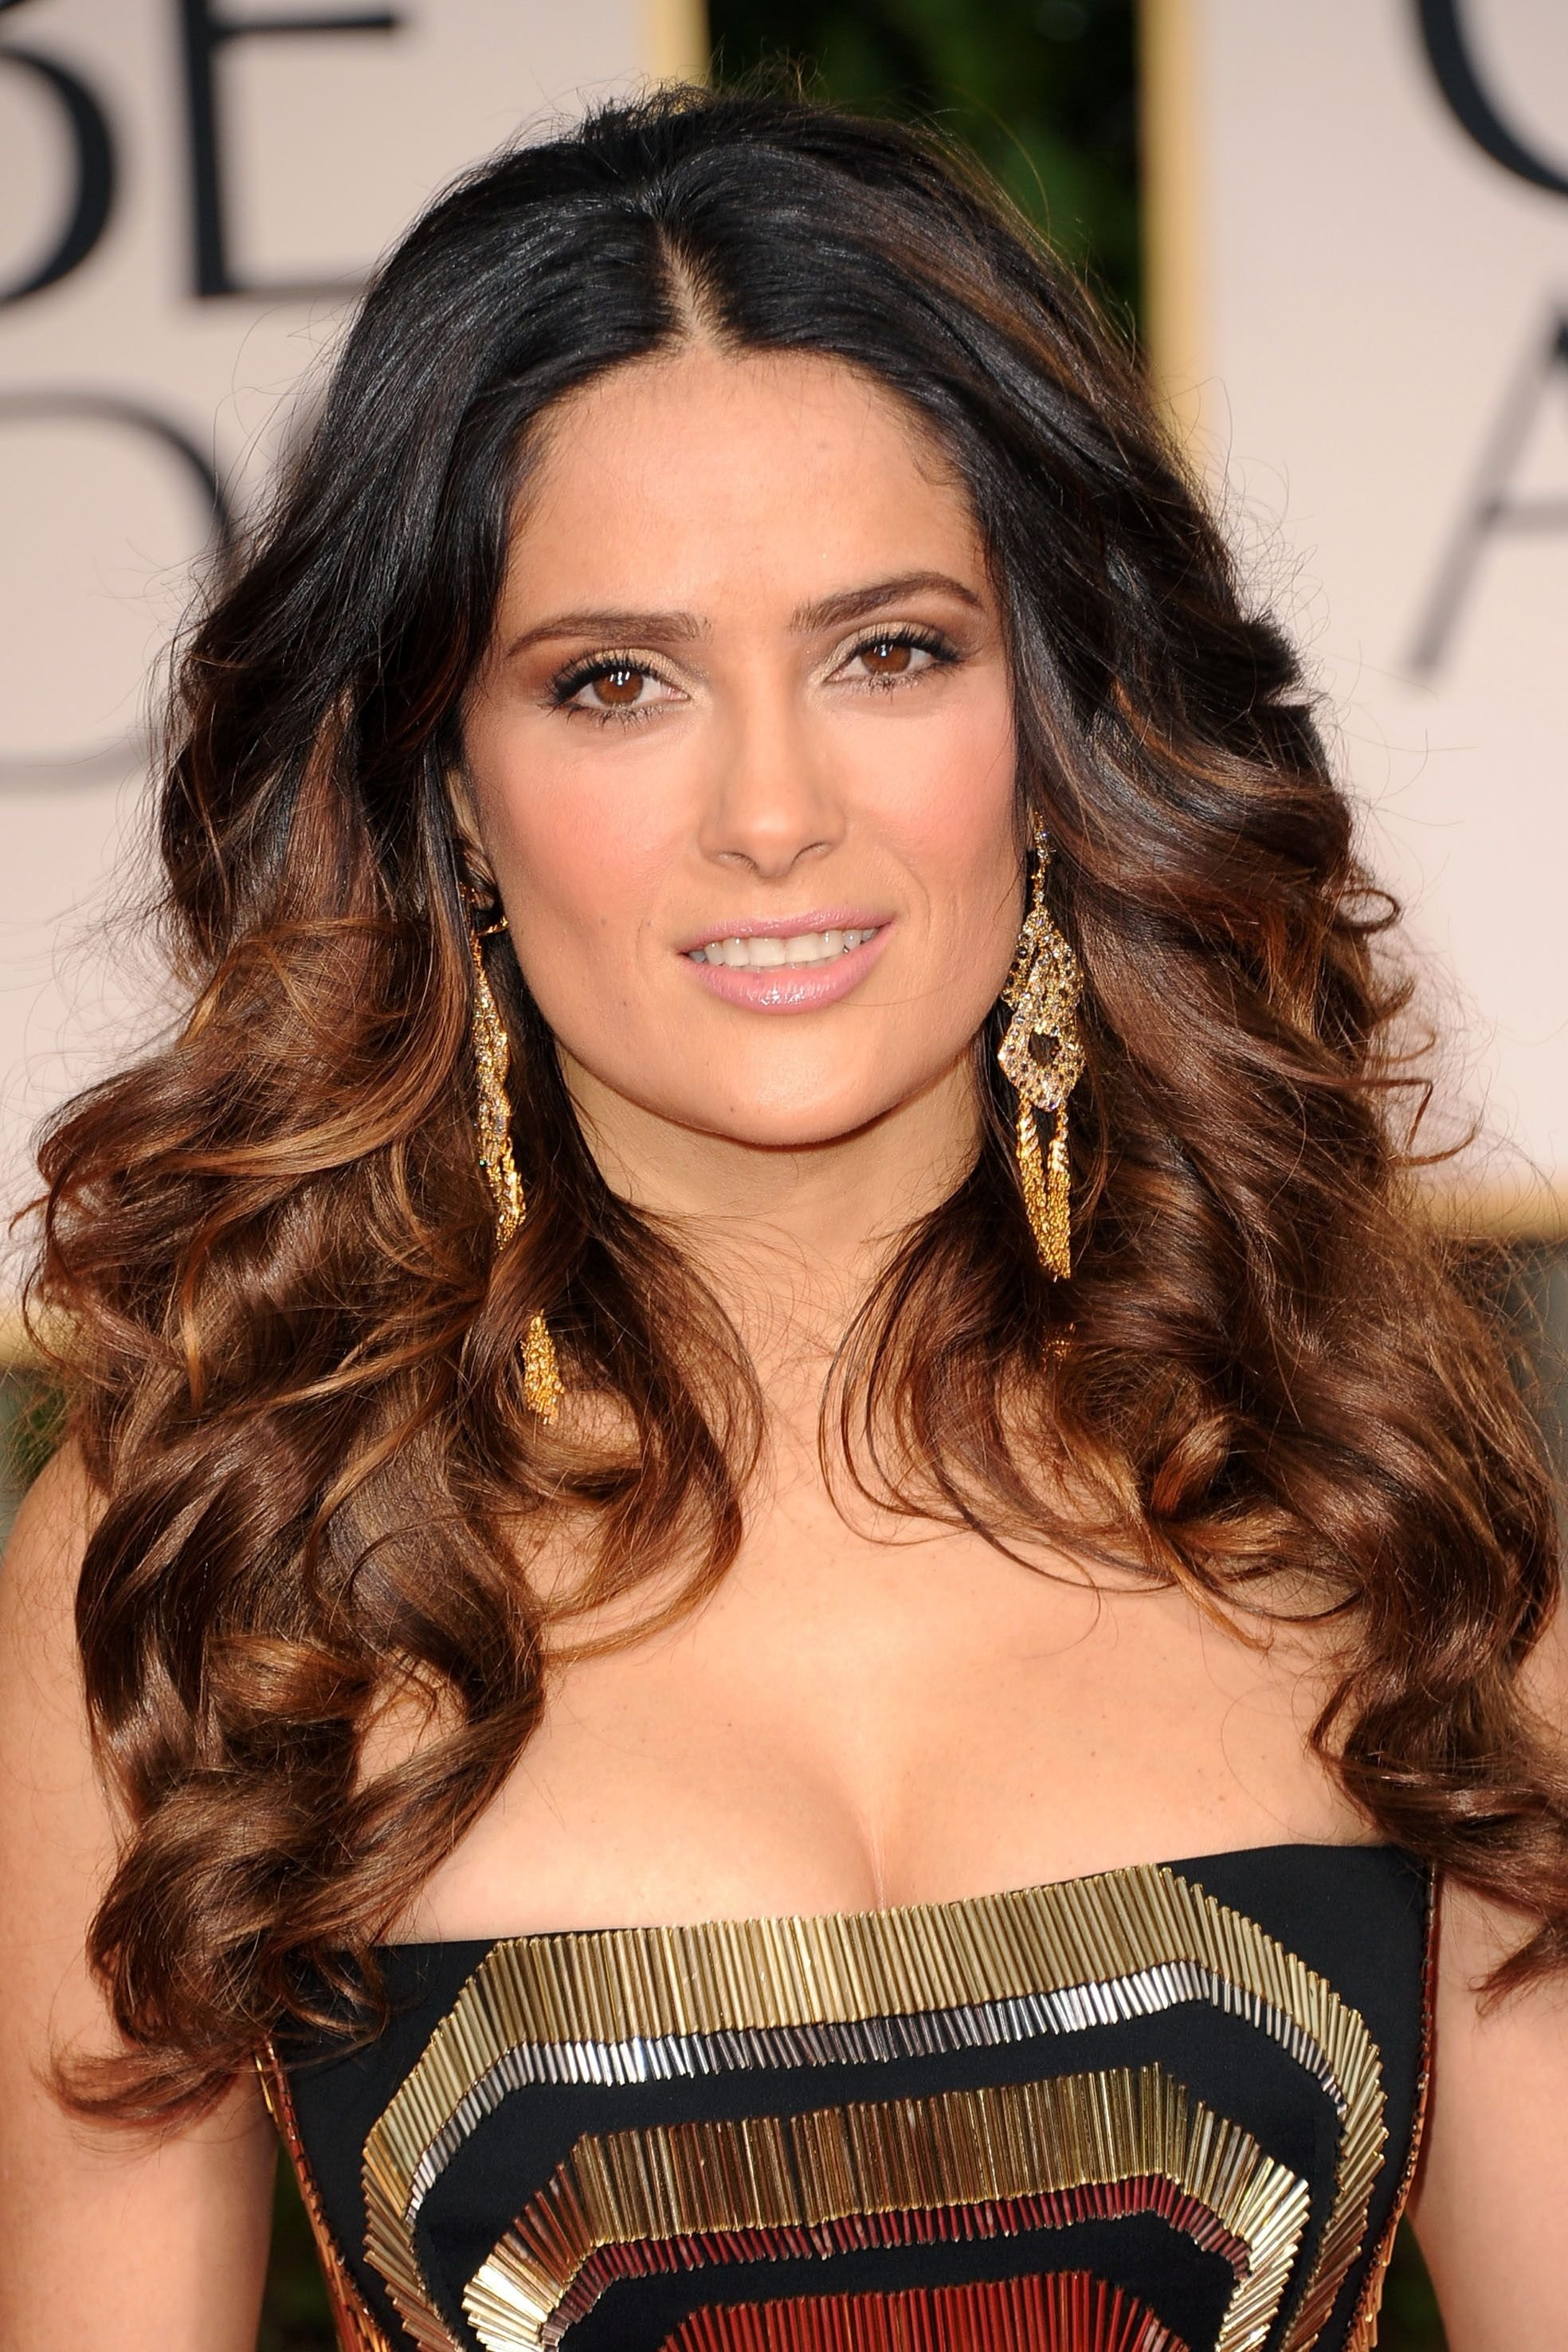 10 Beautiful Two Tone Hair Color Ideas For Brunettes 2018 hair color trends new hair color ideas for 2018 2020